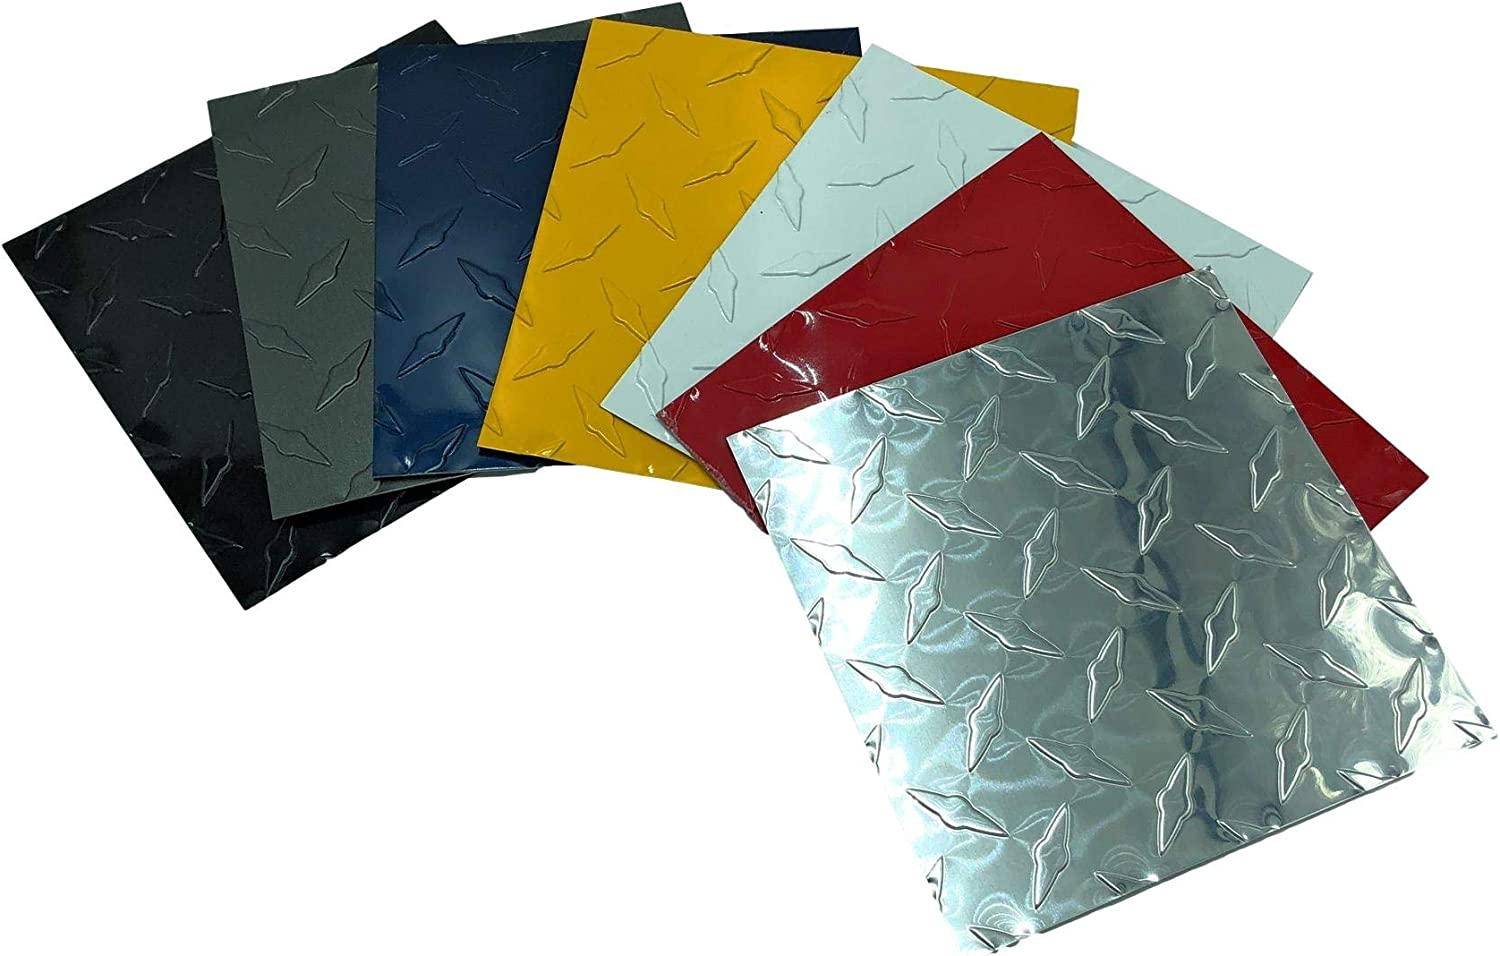 Eagle 1-0.025 10 FT Embossed Aluminum Diamond Checker Plate Sheets//Rolls Multiple Sizes and Colors 2in. X 10ft, Grey Thin - Rolls Include 10 Free 1//8 Aluminum Rivets and Drill Bit